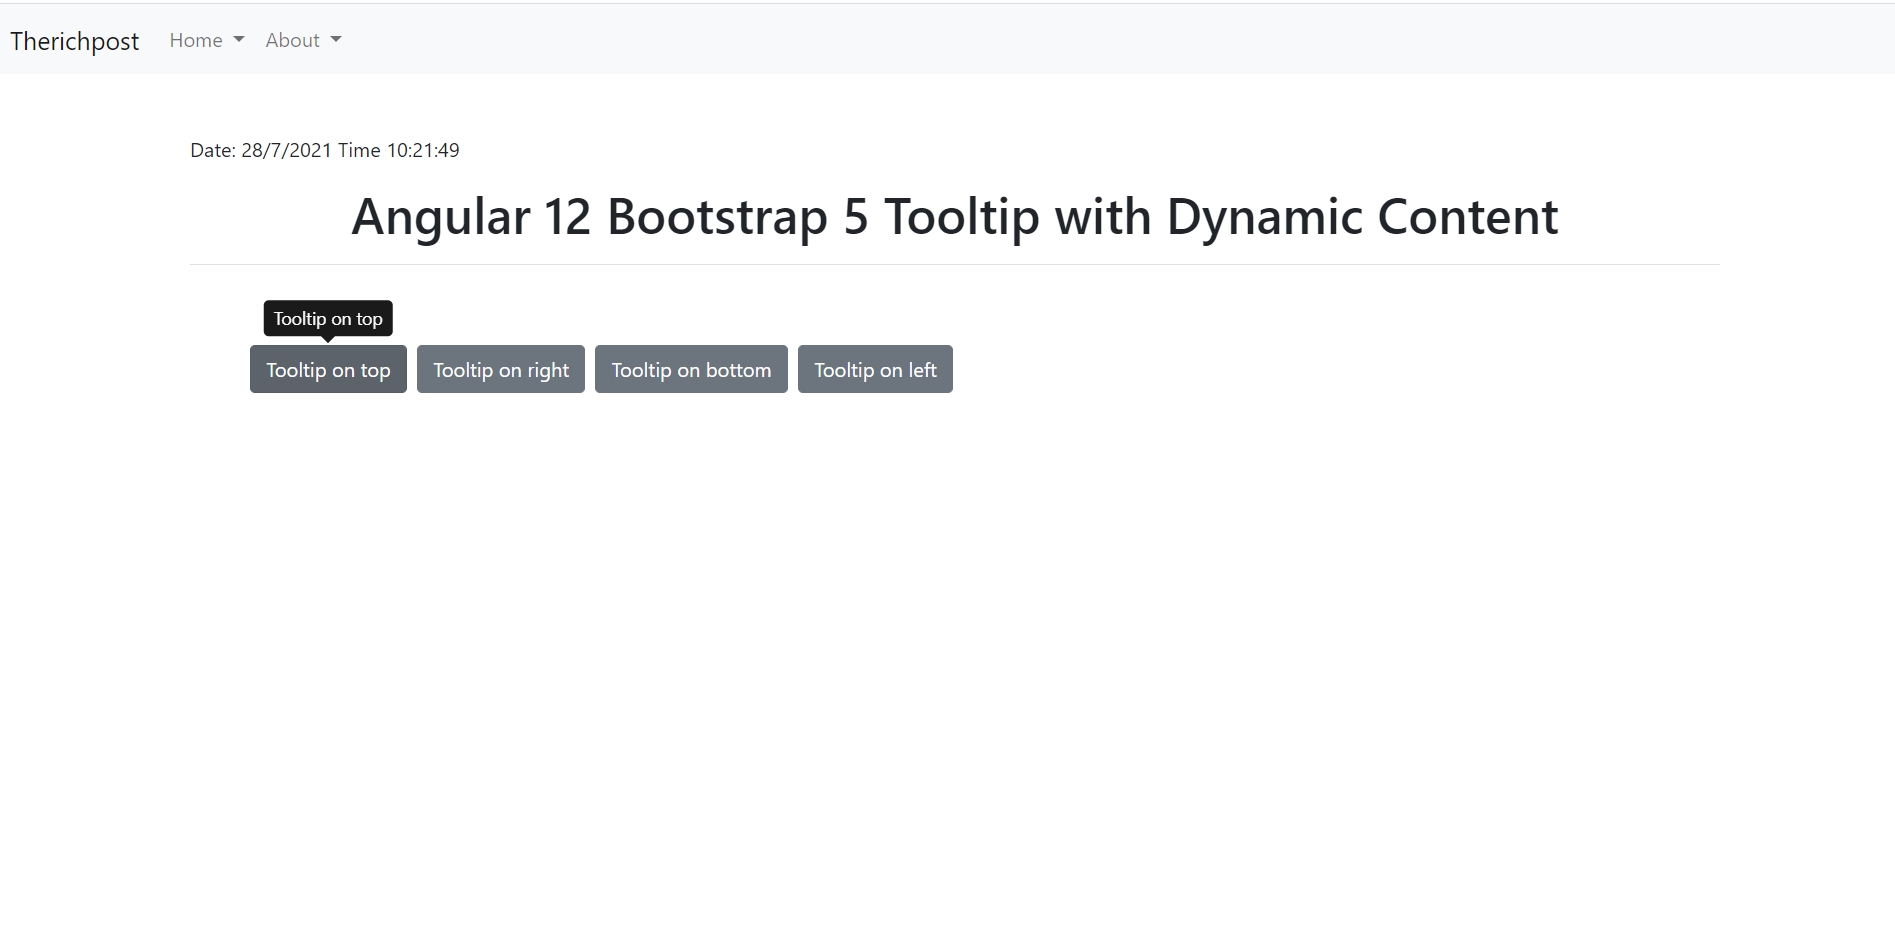 Angular 12 Bootstrap 5 Tooltip with Dynamic Content